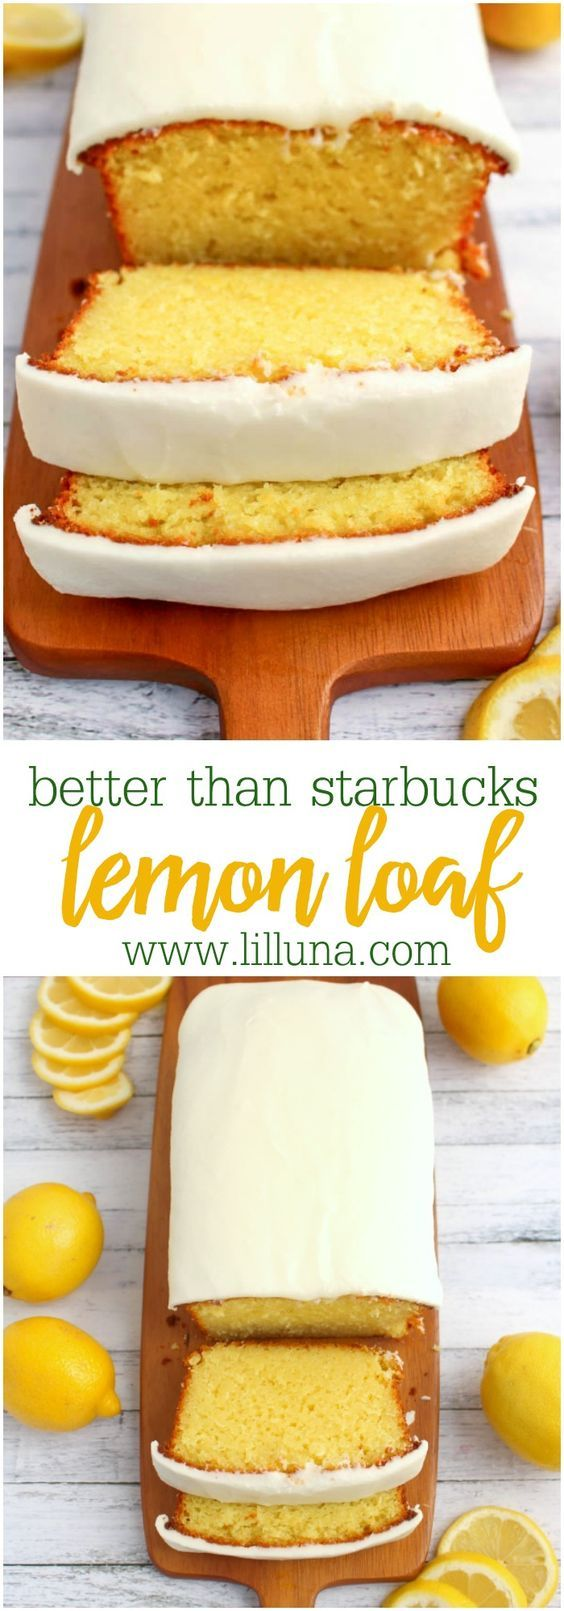 If you like Starbucks Lemon Loaf, then you'll love this moist, delicious Lemon cake! This easy to make recipe, is loaded with delicious lemon flavor, and topped with an amazing lemon frosting.: